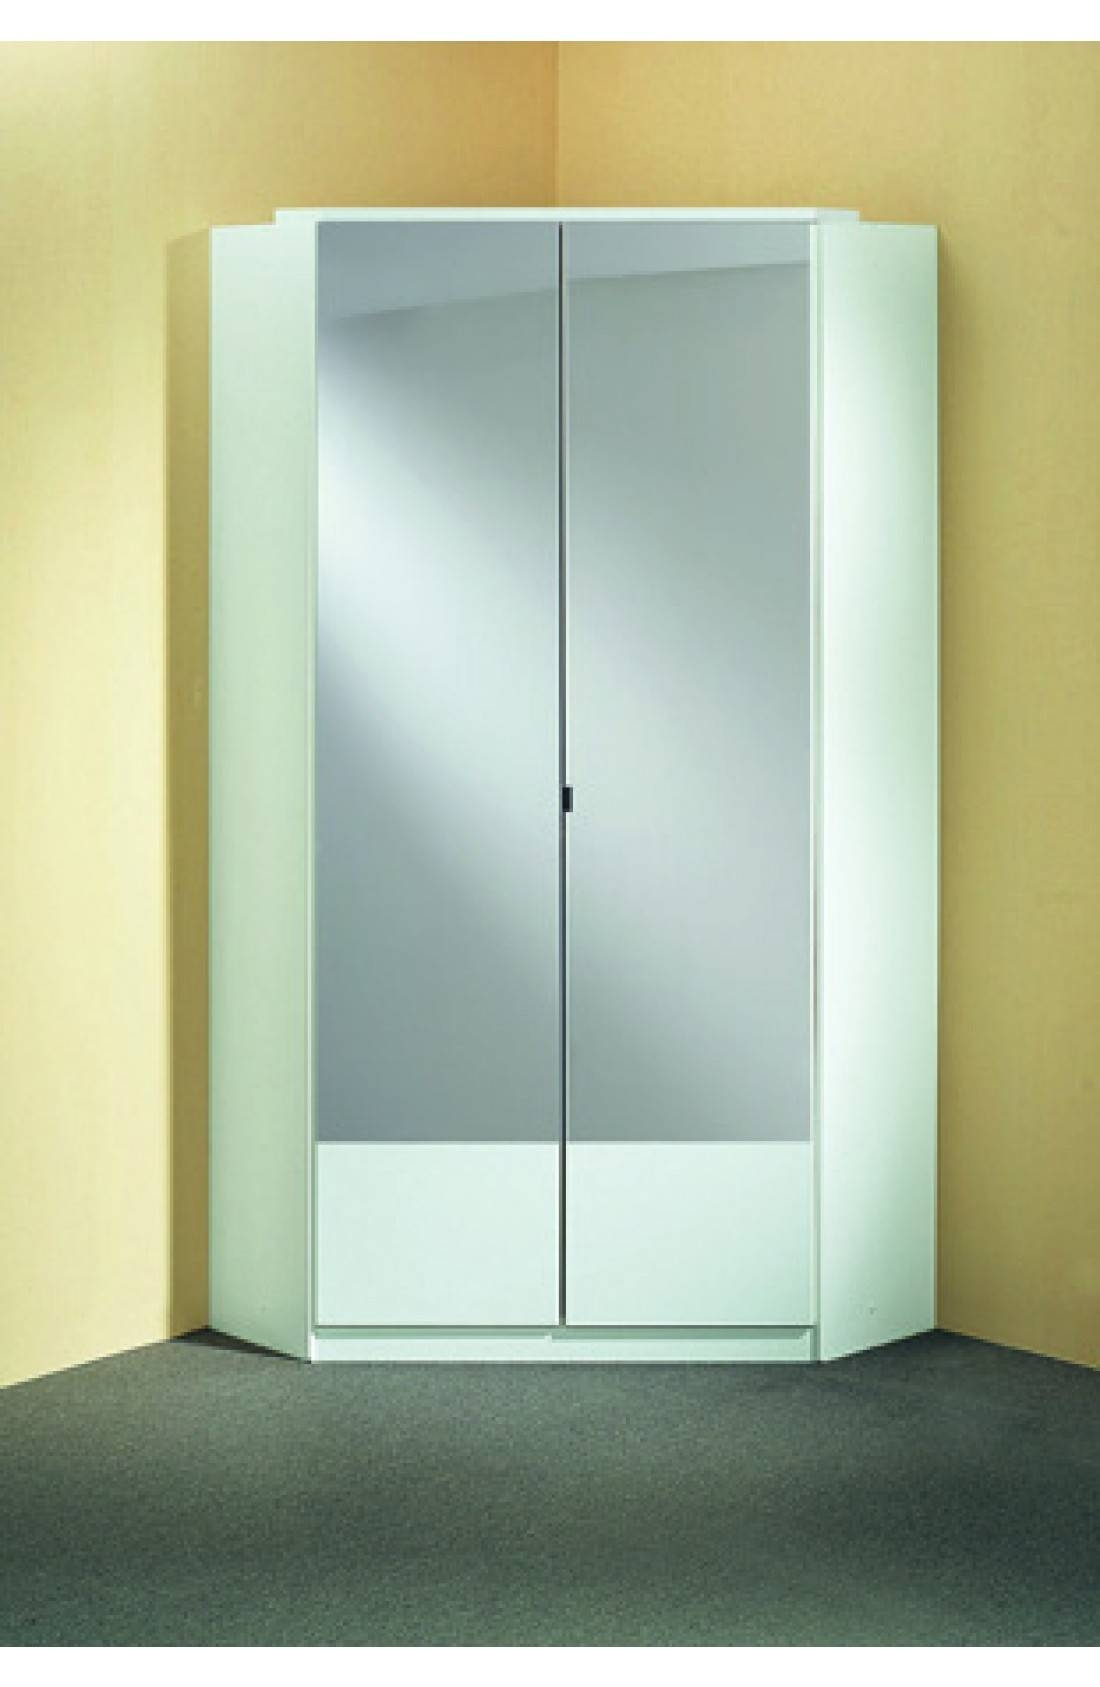 Slumberhaus 'imago' German Made Modern Alpine White & Mirror 2 Intended For 2 Door Corner Wardrobes (View 12 of 15)